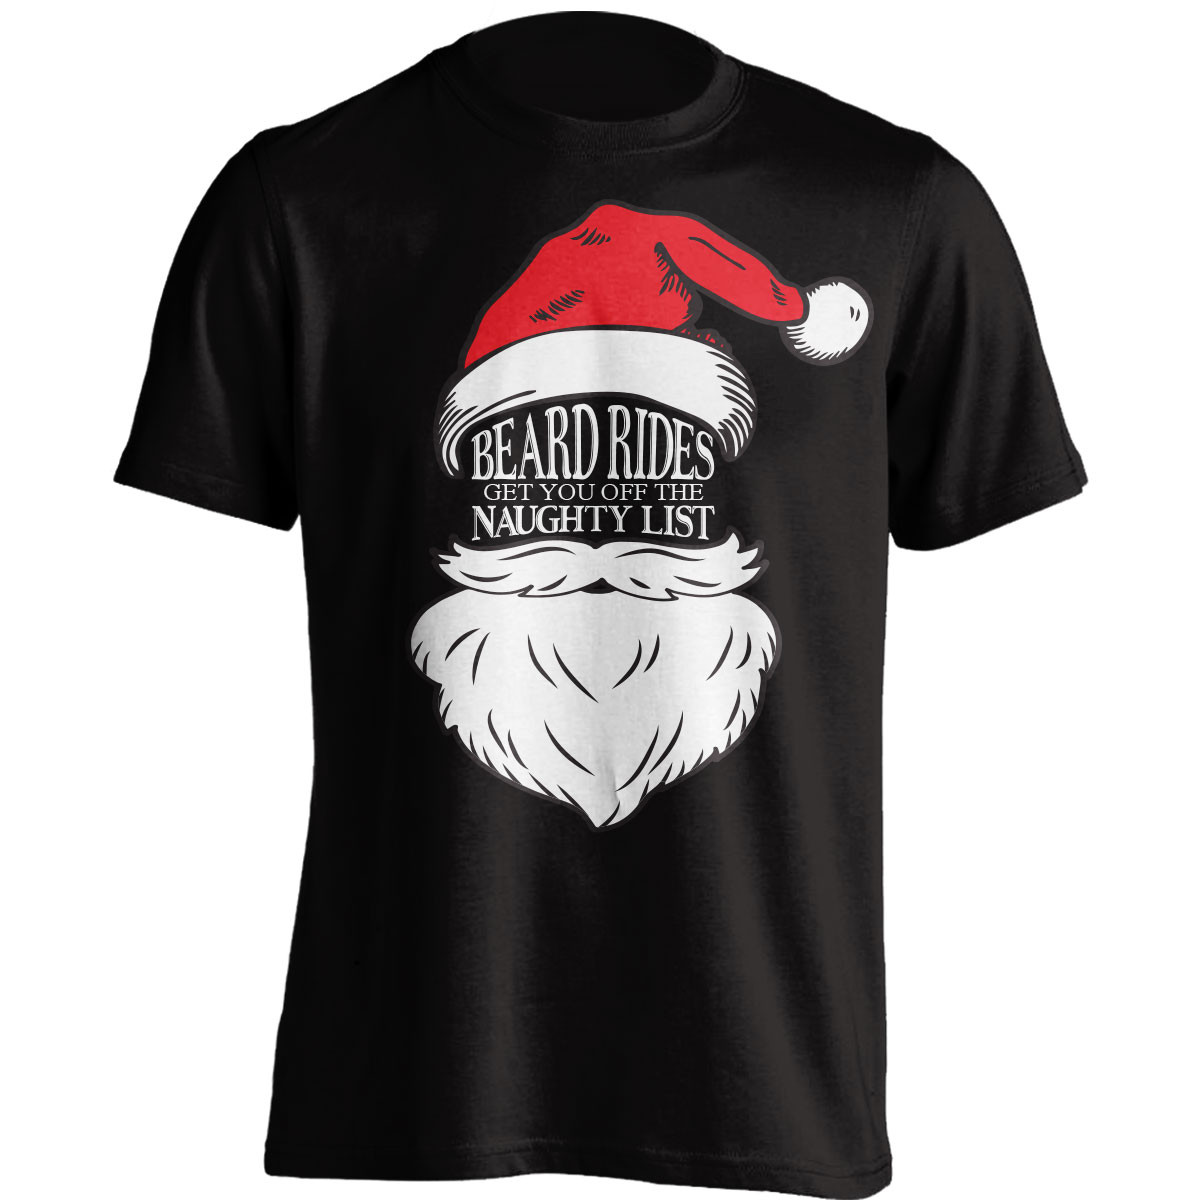 """Beard Rides Get You Off The Naughty List"" T-Shirt"